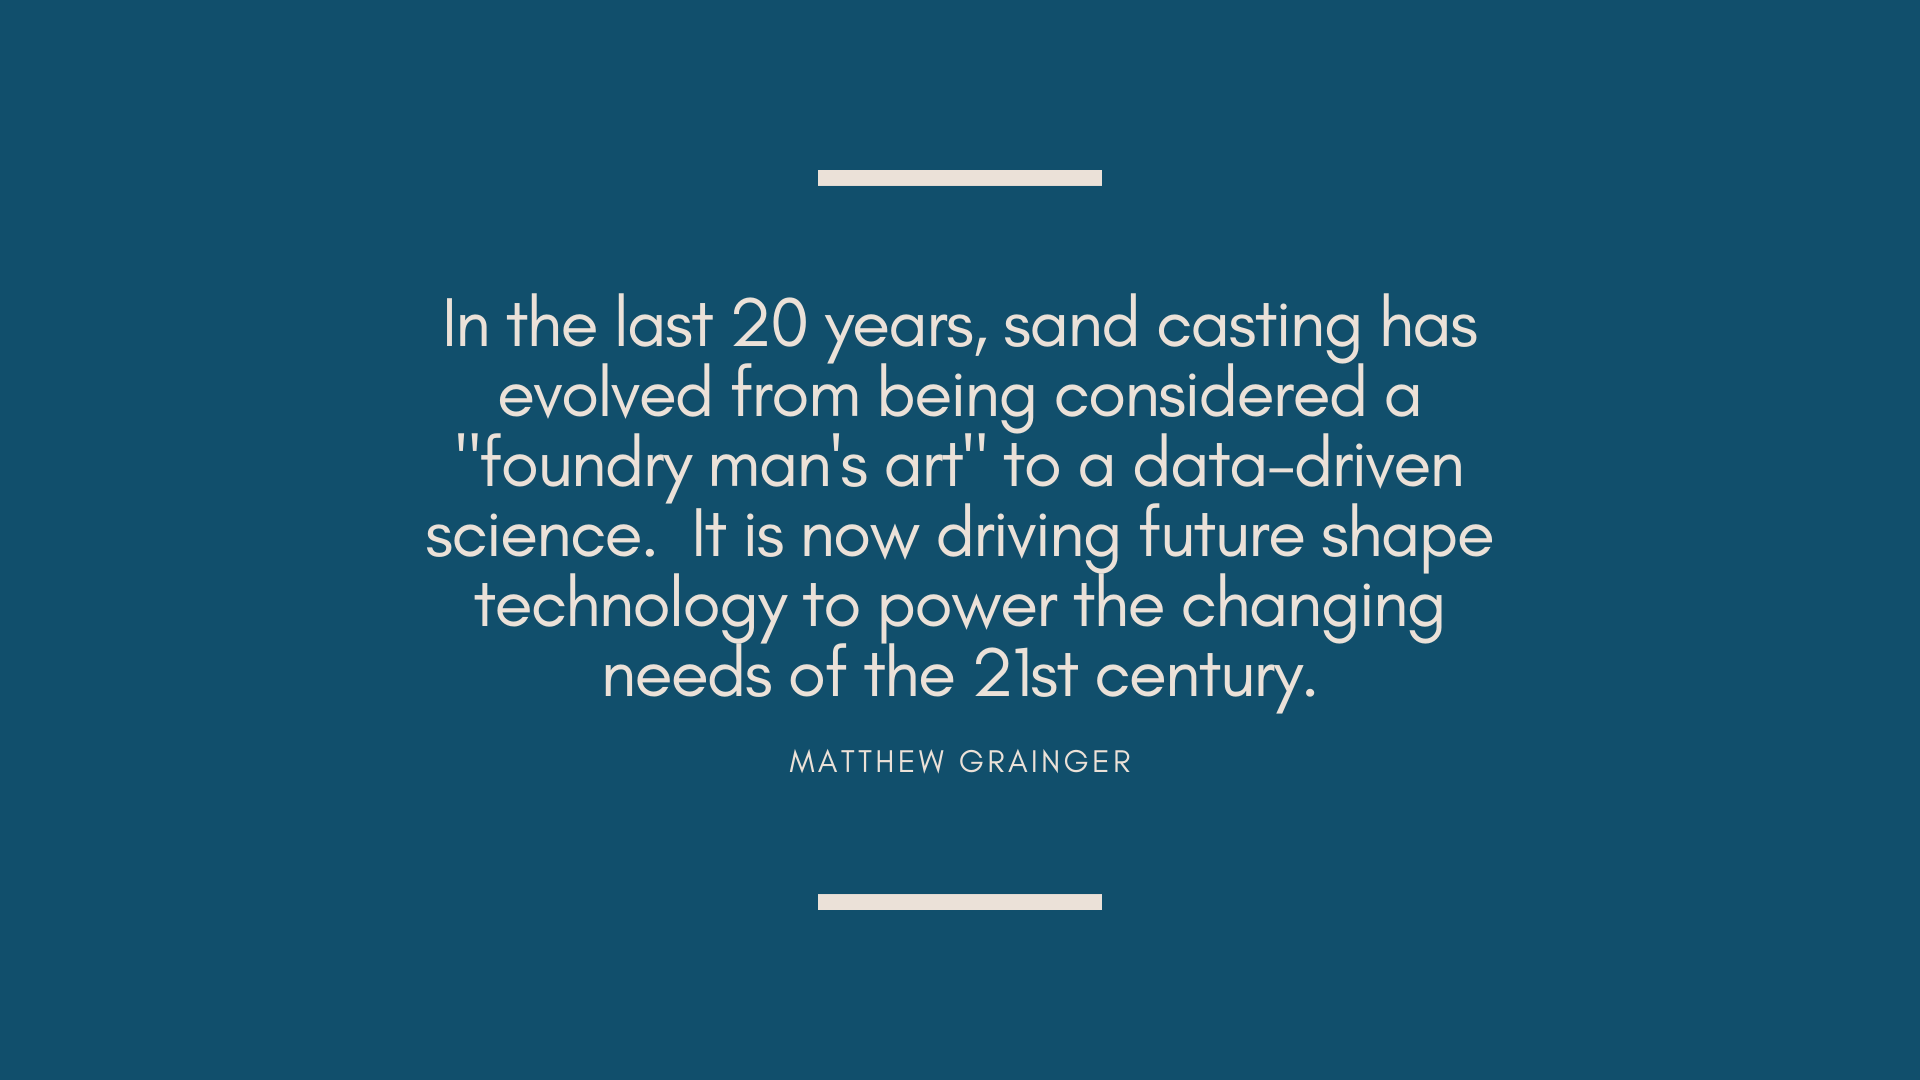 Casting science quote